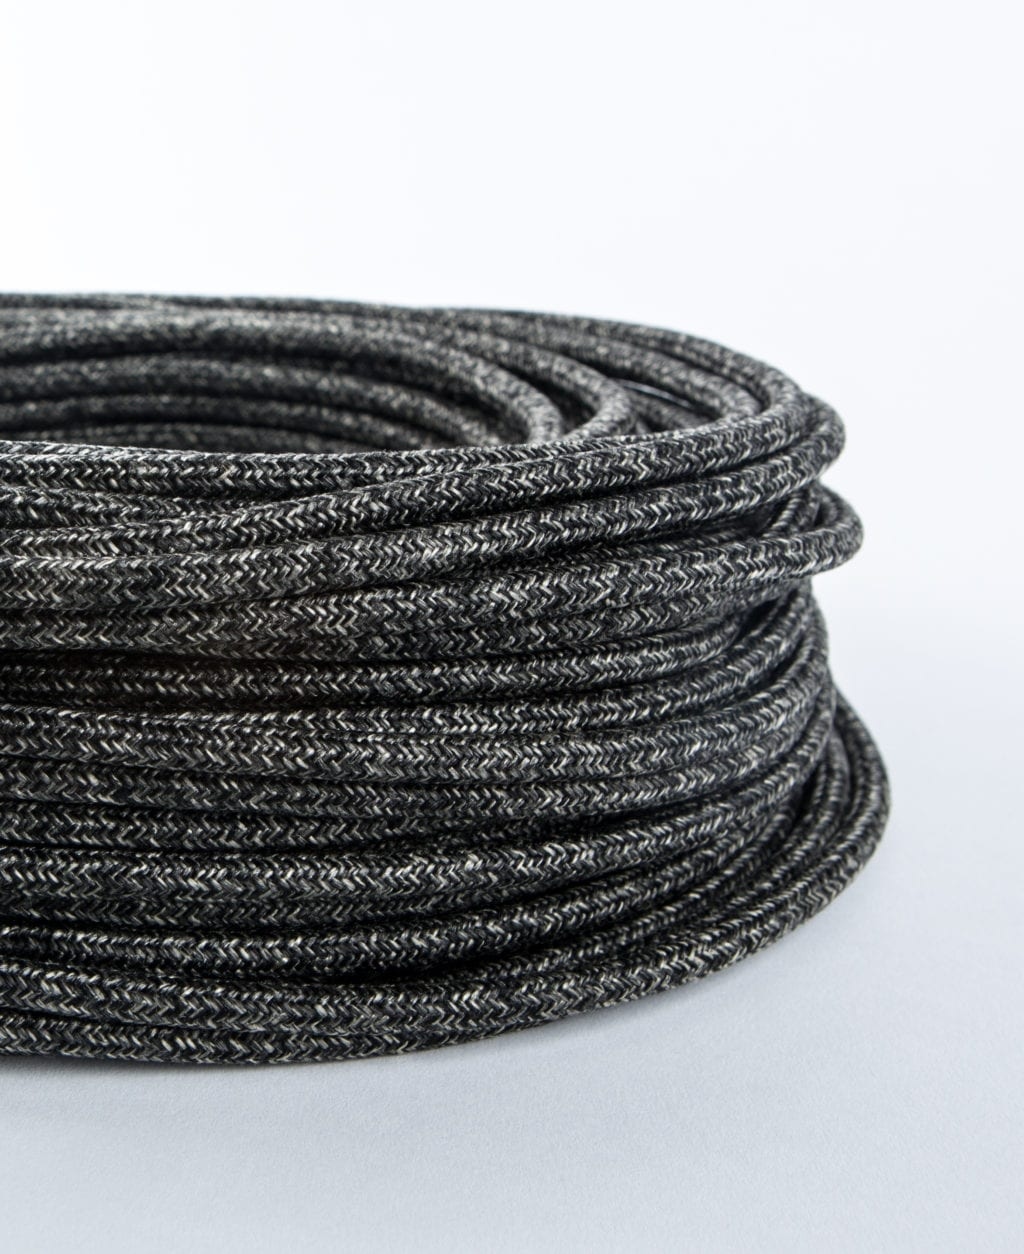 closeup of fisherman's jumper fabric cable coil against white background